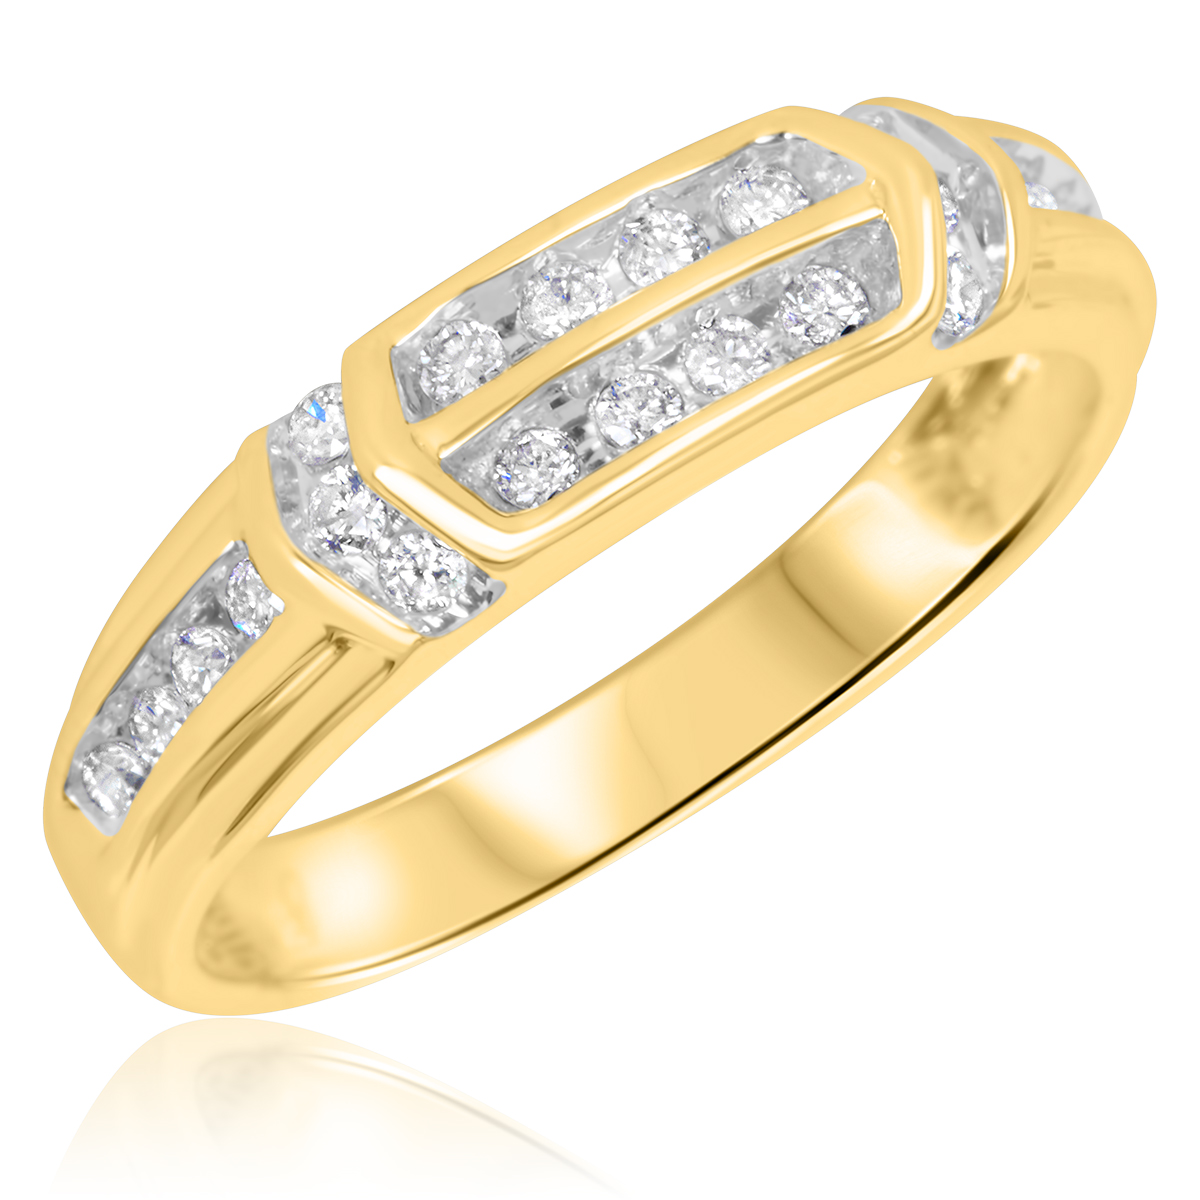 1/4 CT. T.W. Round Cut Diamond Ladies Wedding Ring 10K Yellow Gold- Size 8